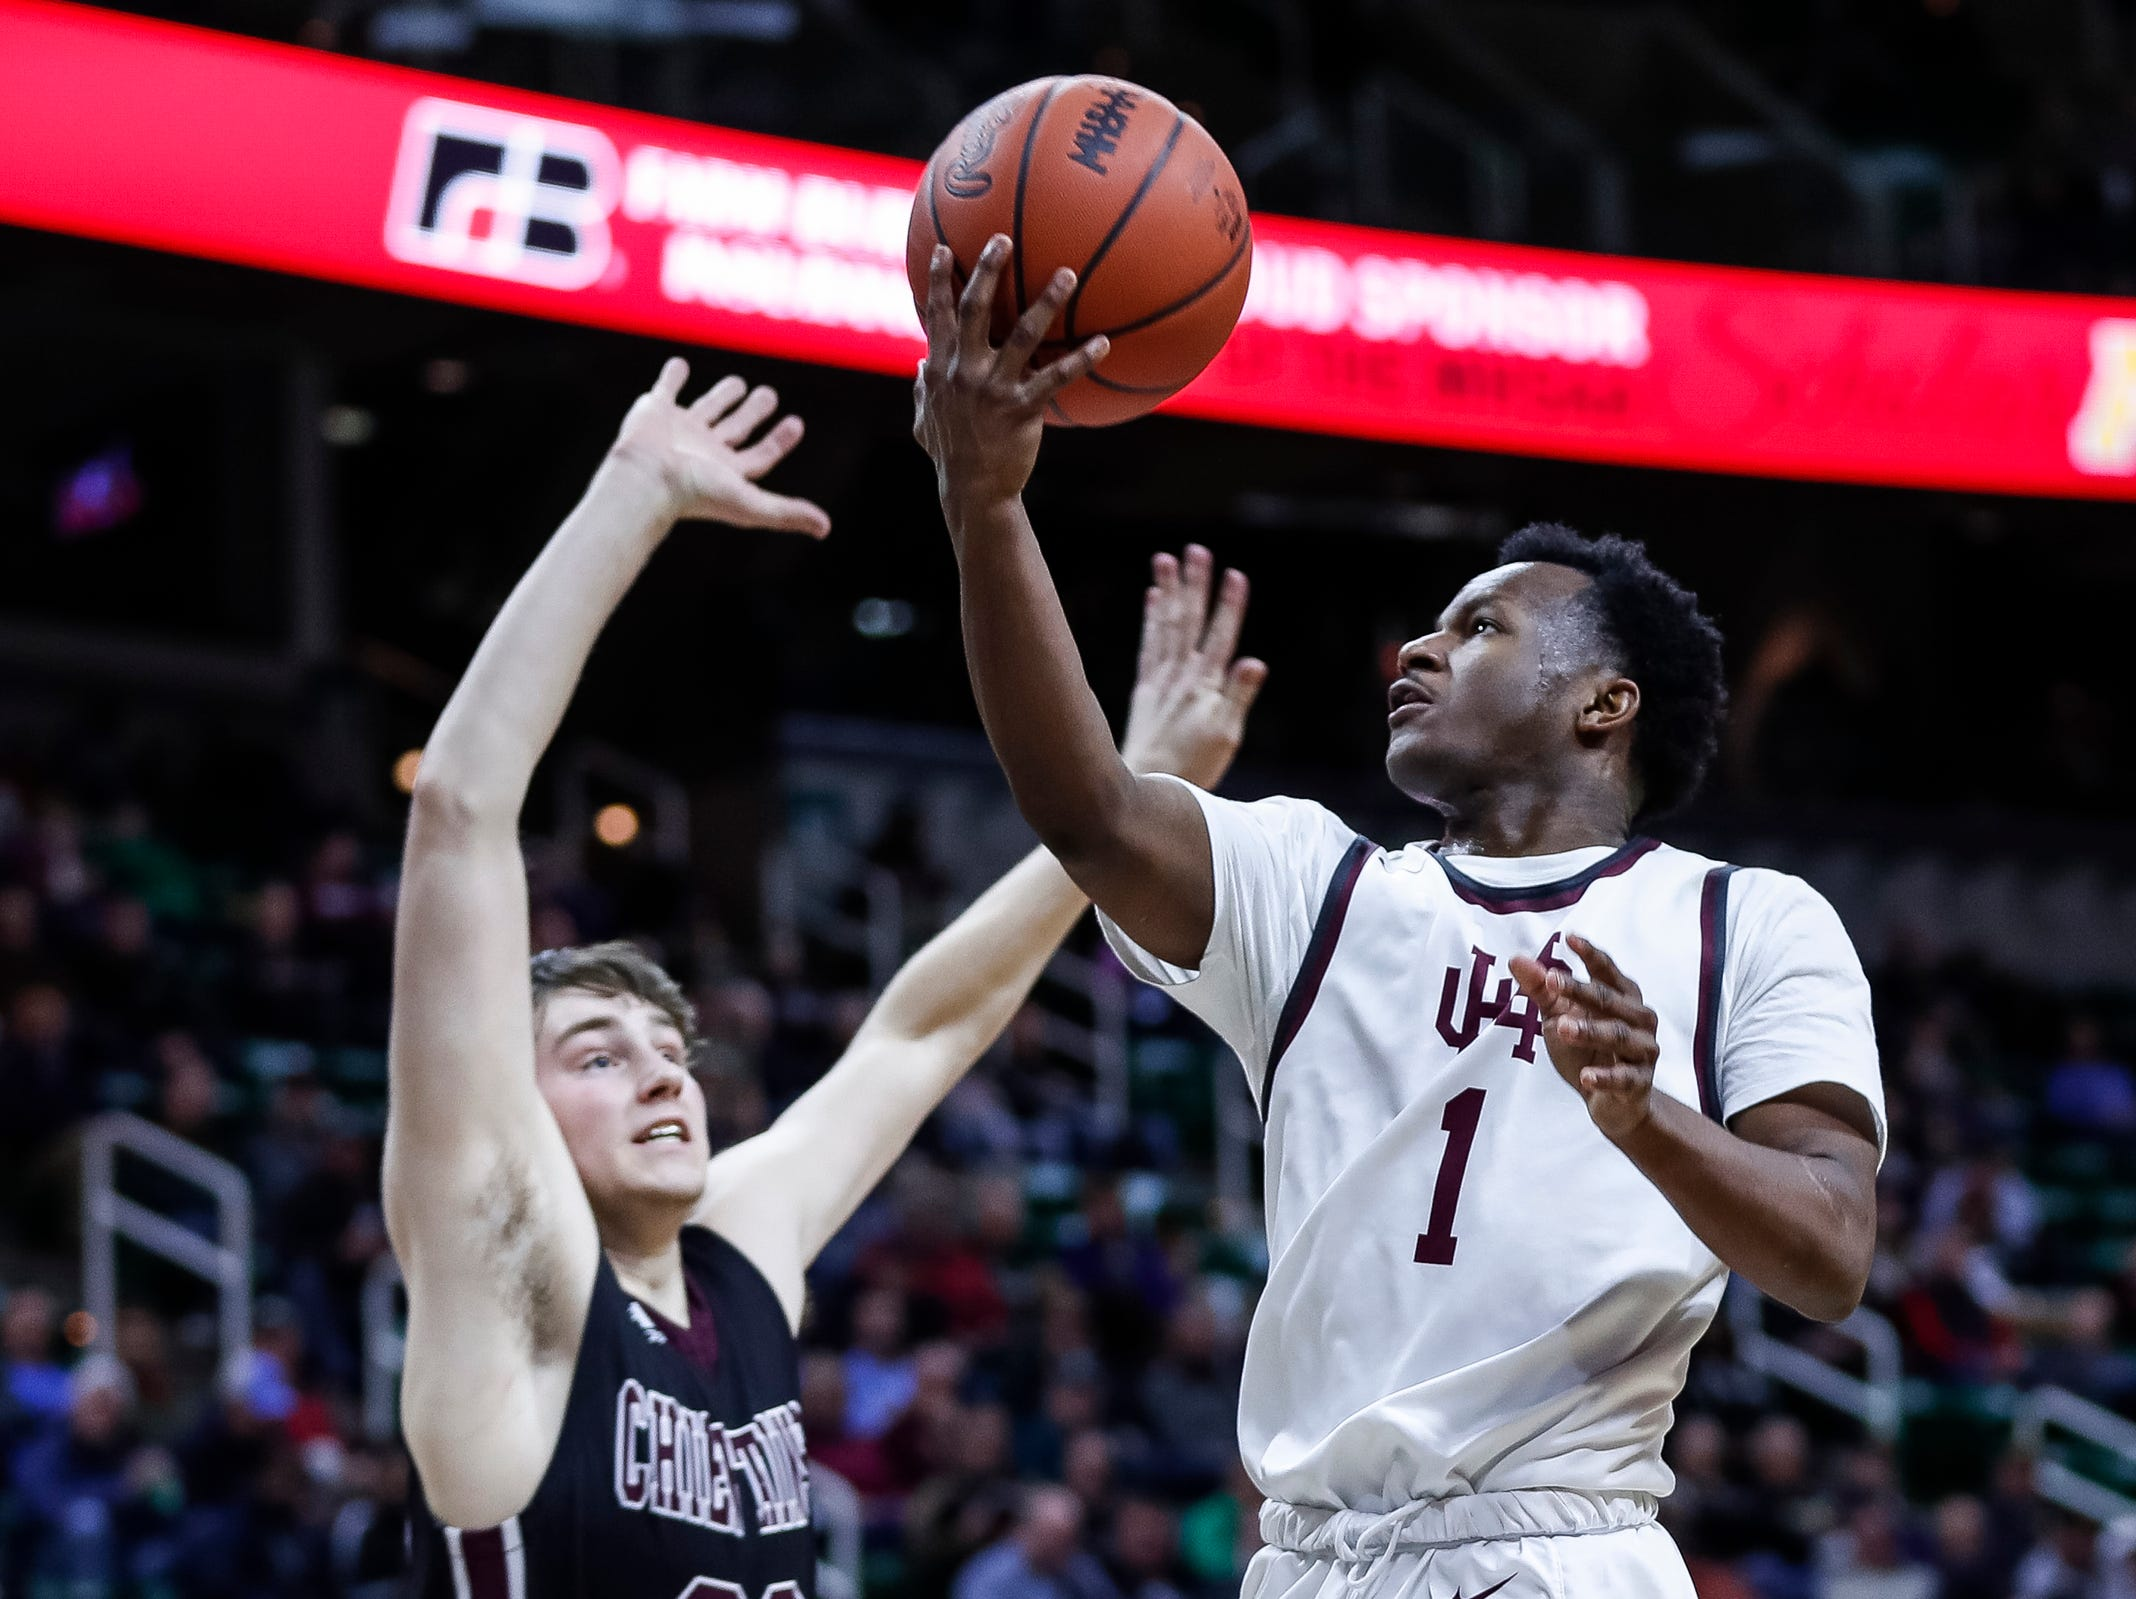 U-D Jesuit's Julian Dozier (1) makes a layup against Okemos during the second half of MHSAA Division 1 semifinal at the Breslin Center in East Lansing, Friday, March 15, 2019.